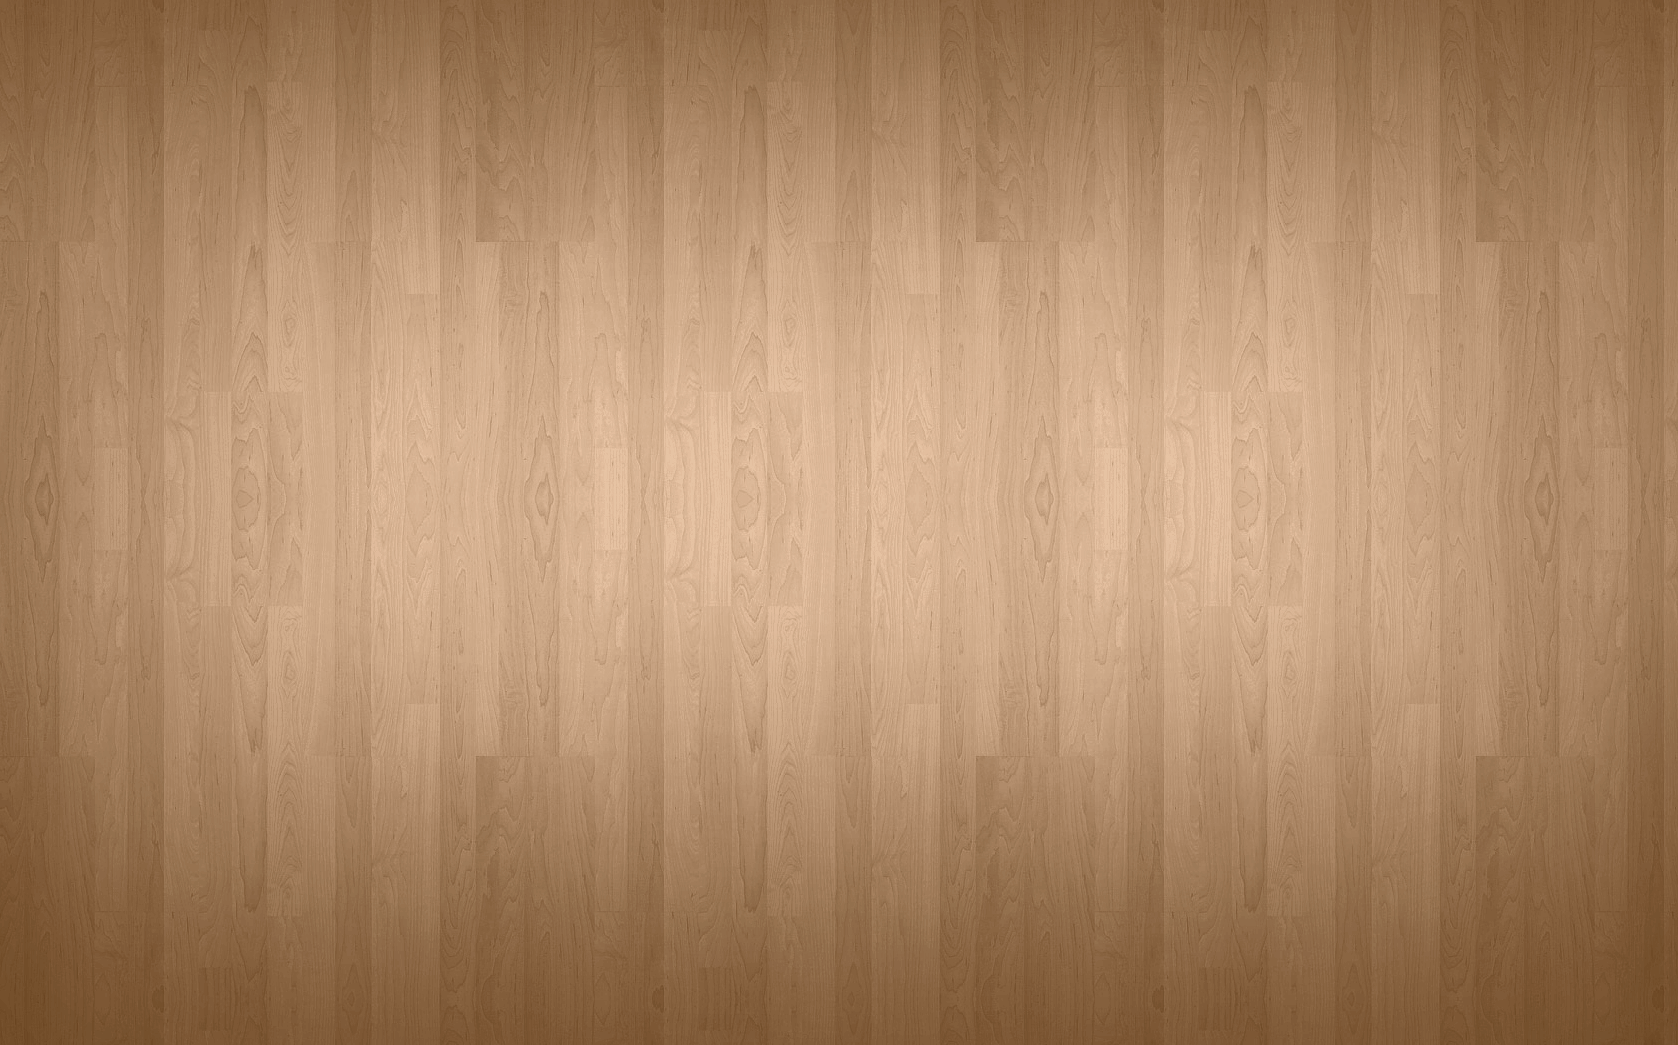 Background image css trackid sp 006 - Download